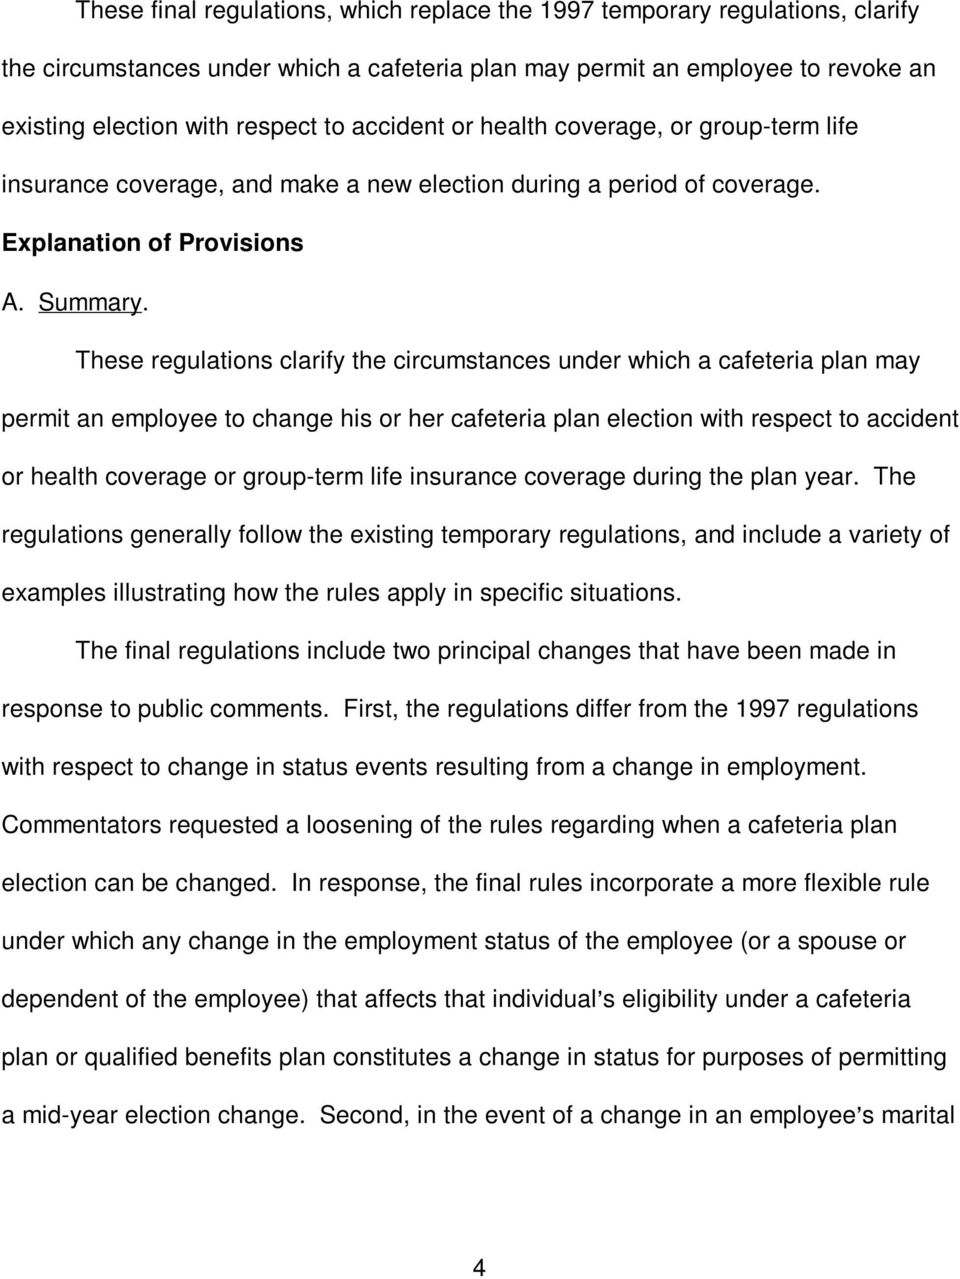 These regulations clarify the circumstances under which a cafeteria plan may permit an employee to change his or her cafeteria plan election with respect to accident or health coverage or group-term